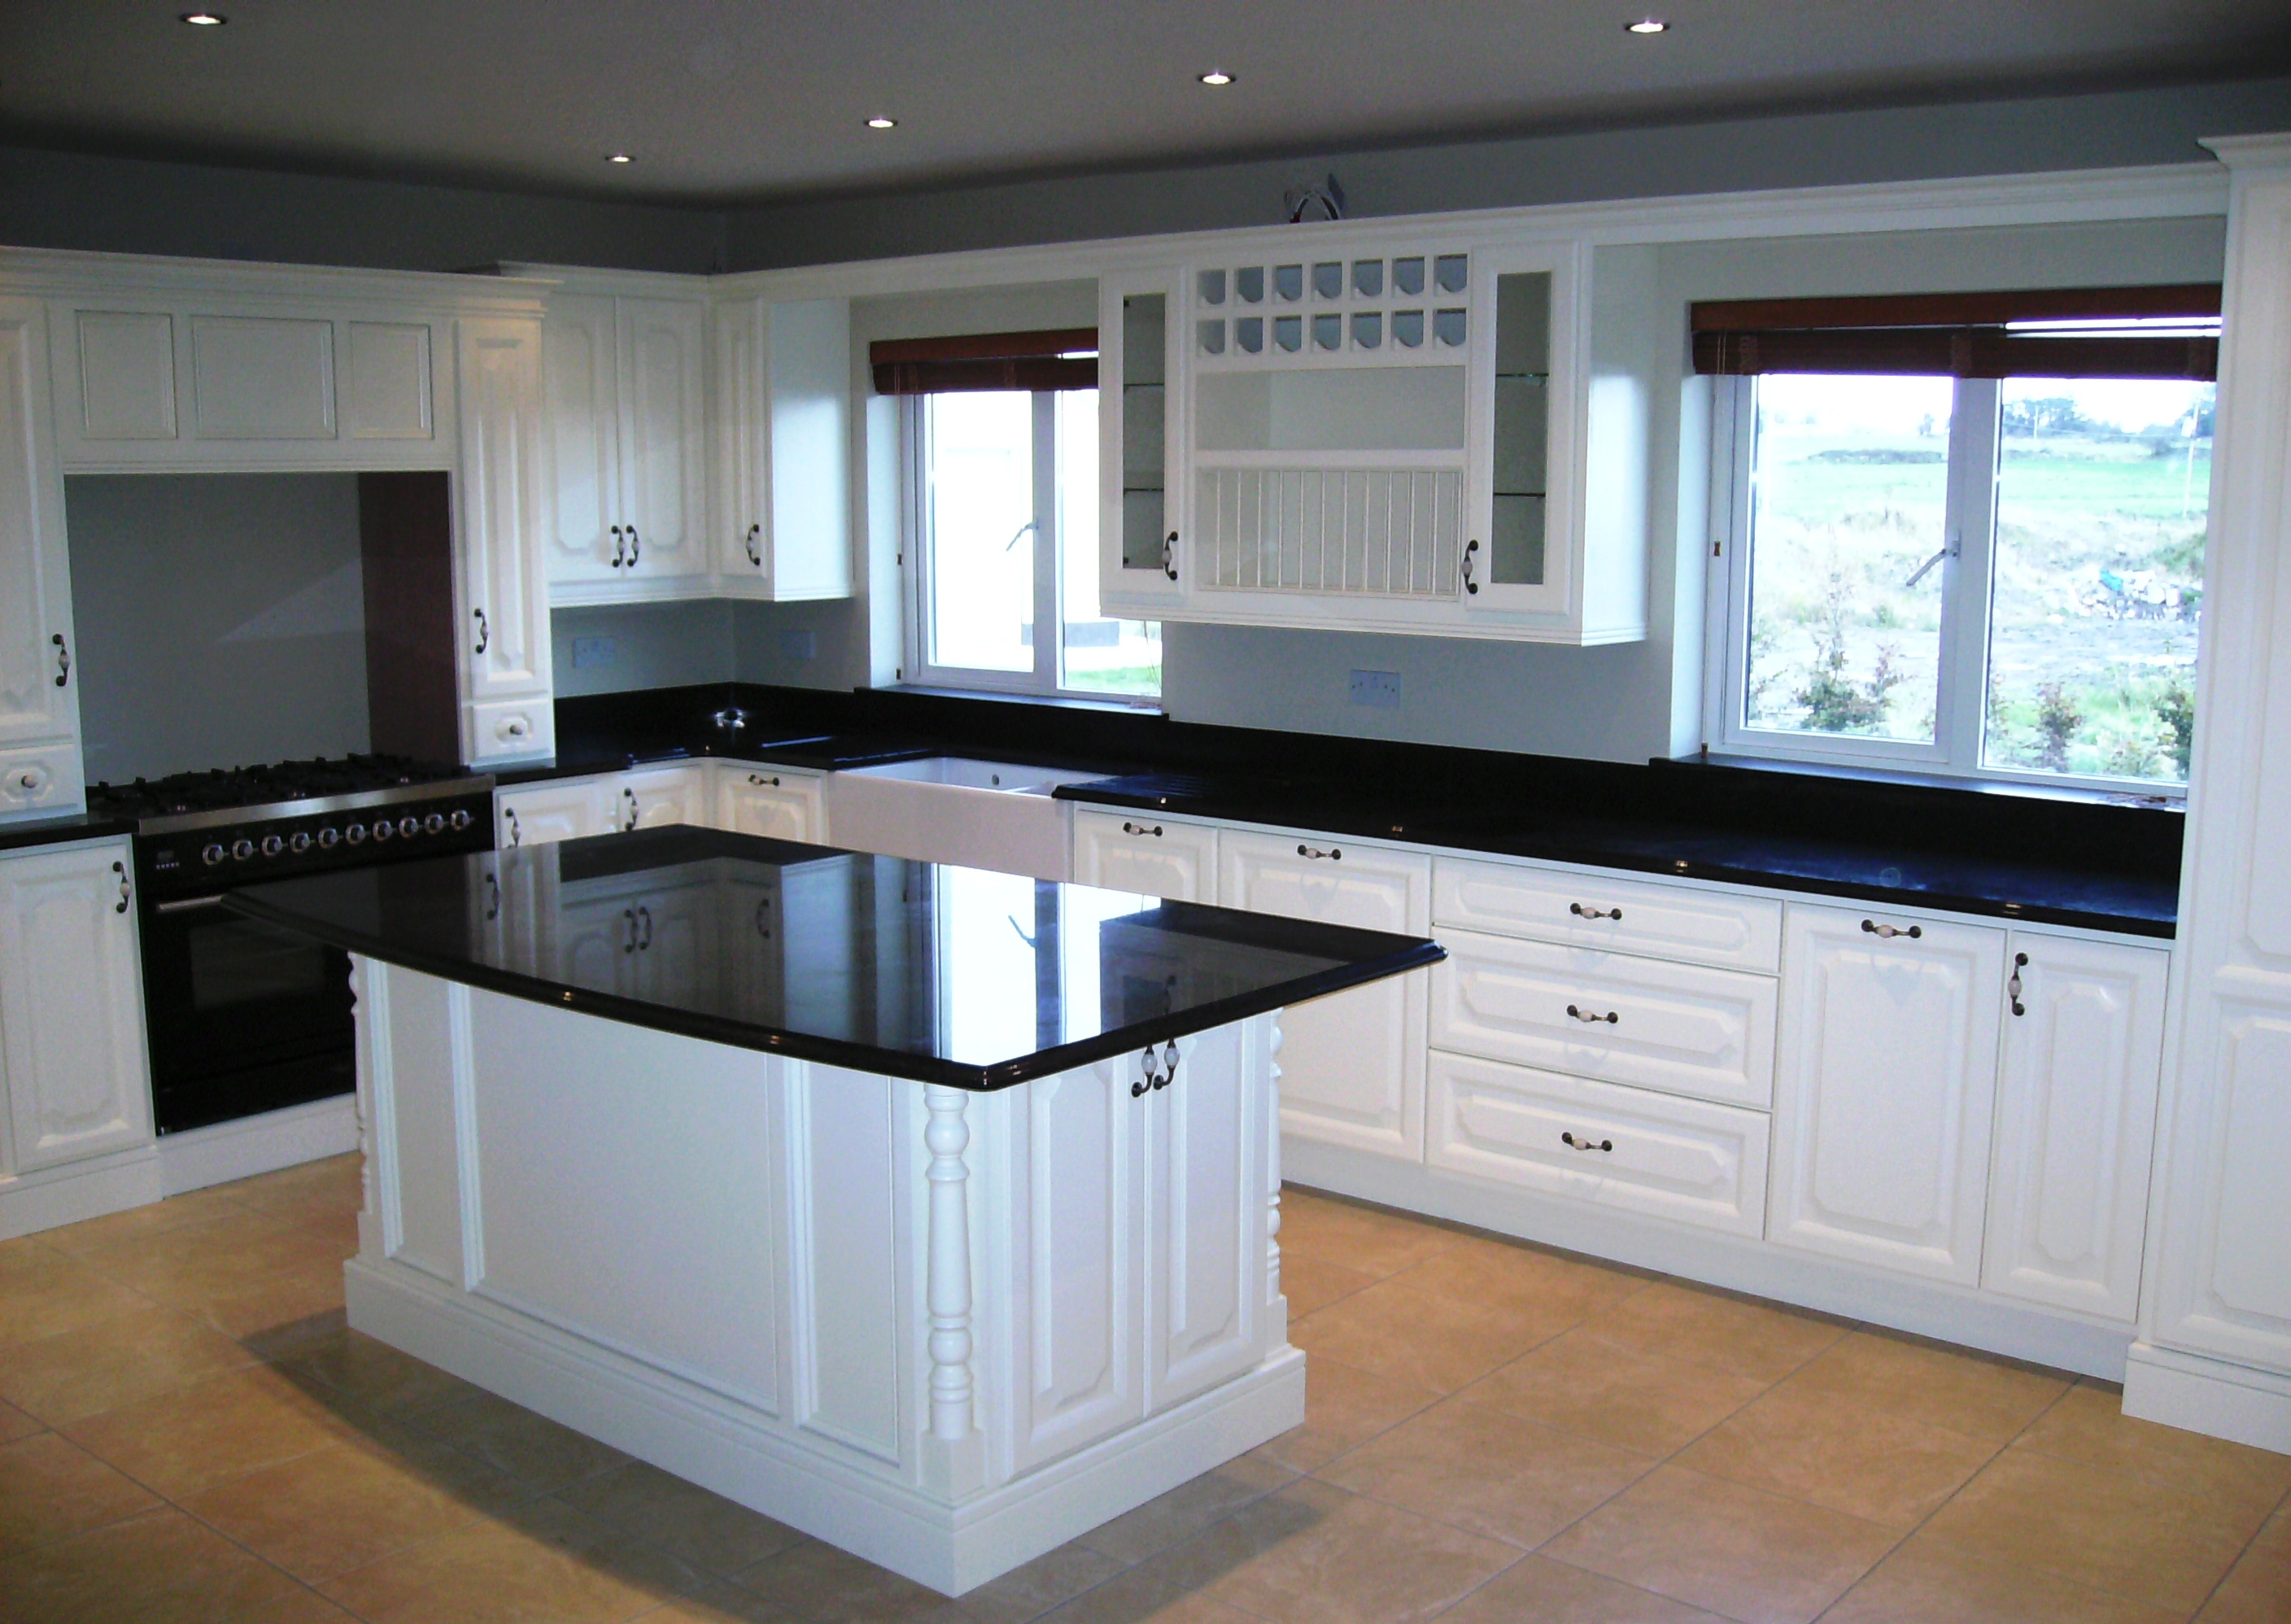 Thought forms ireland kitchens Good kitchen design images